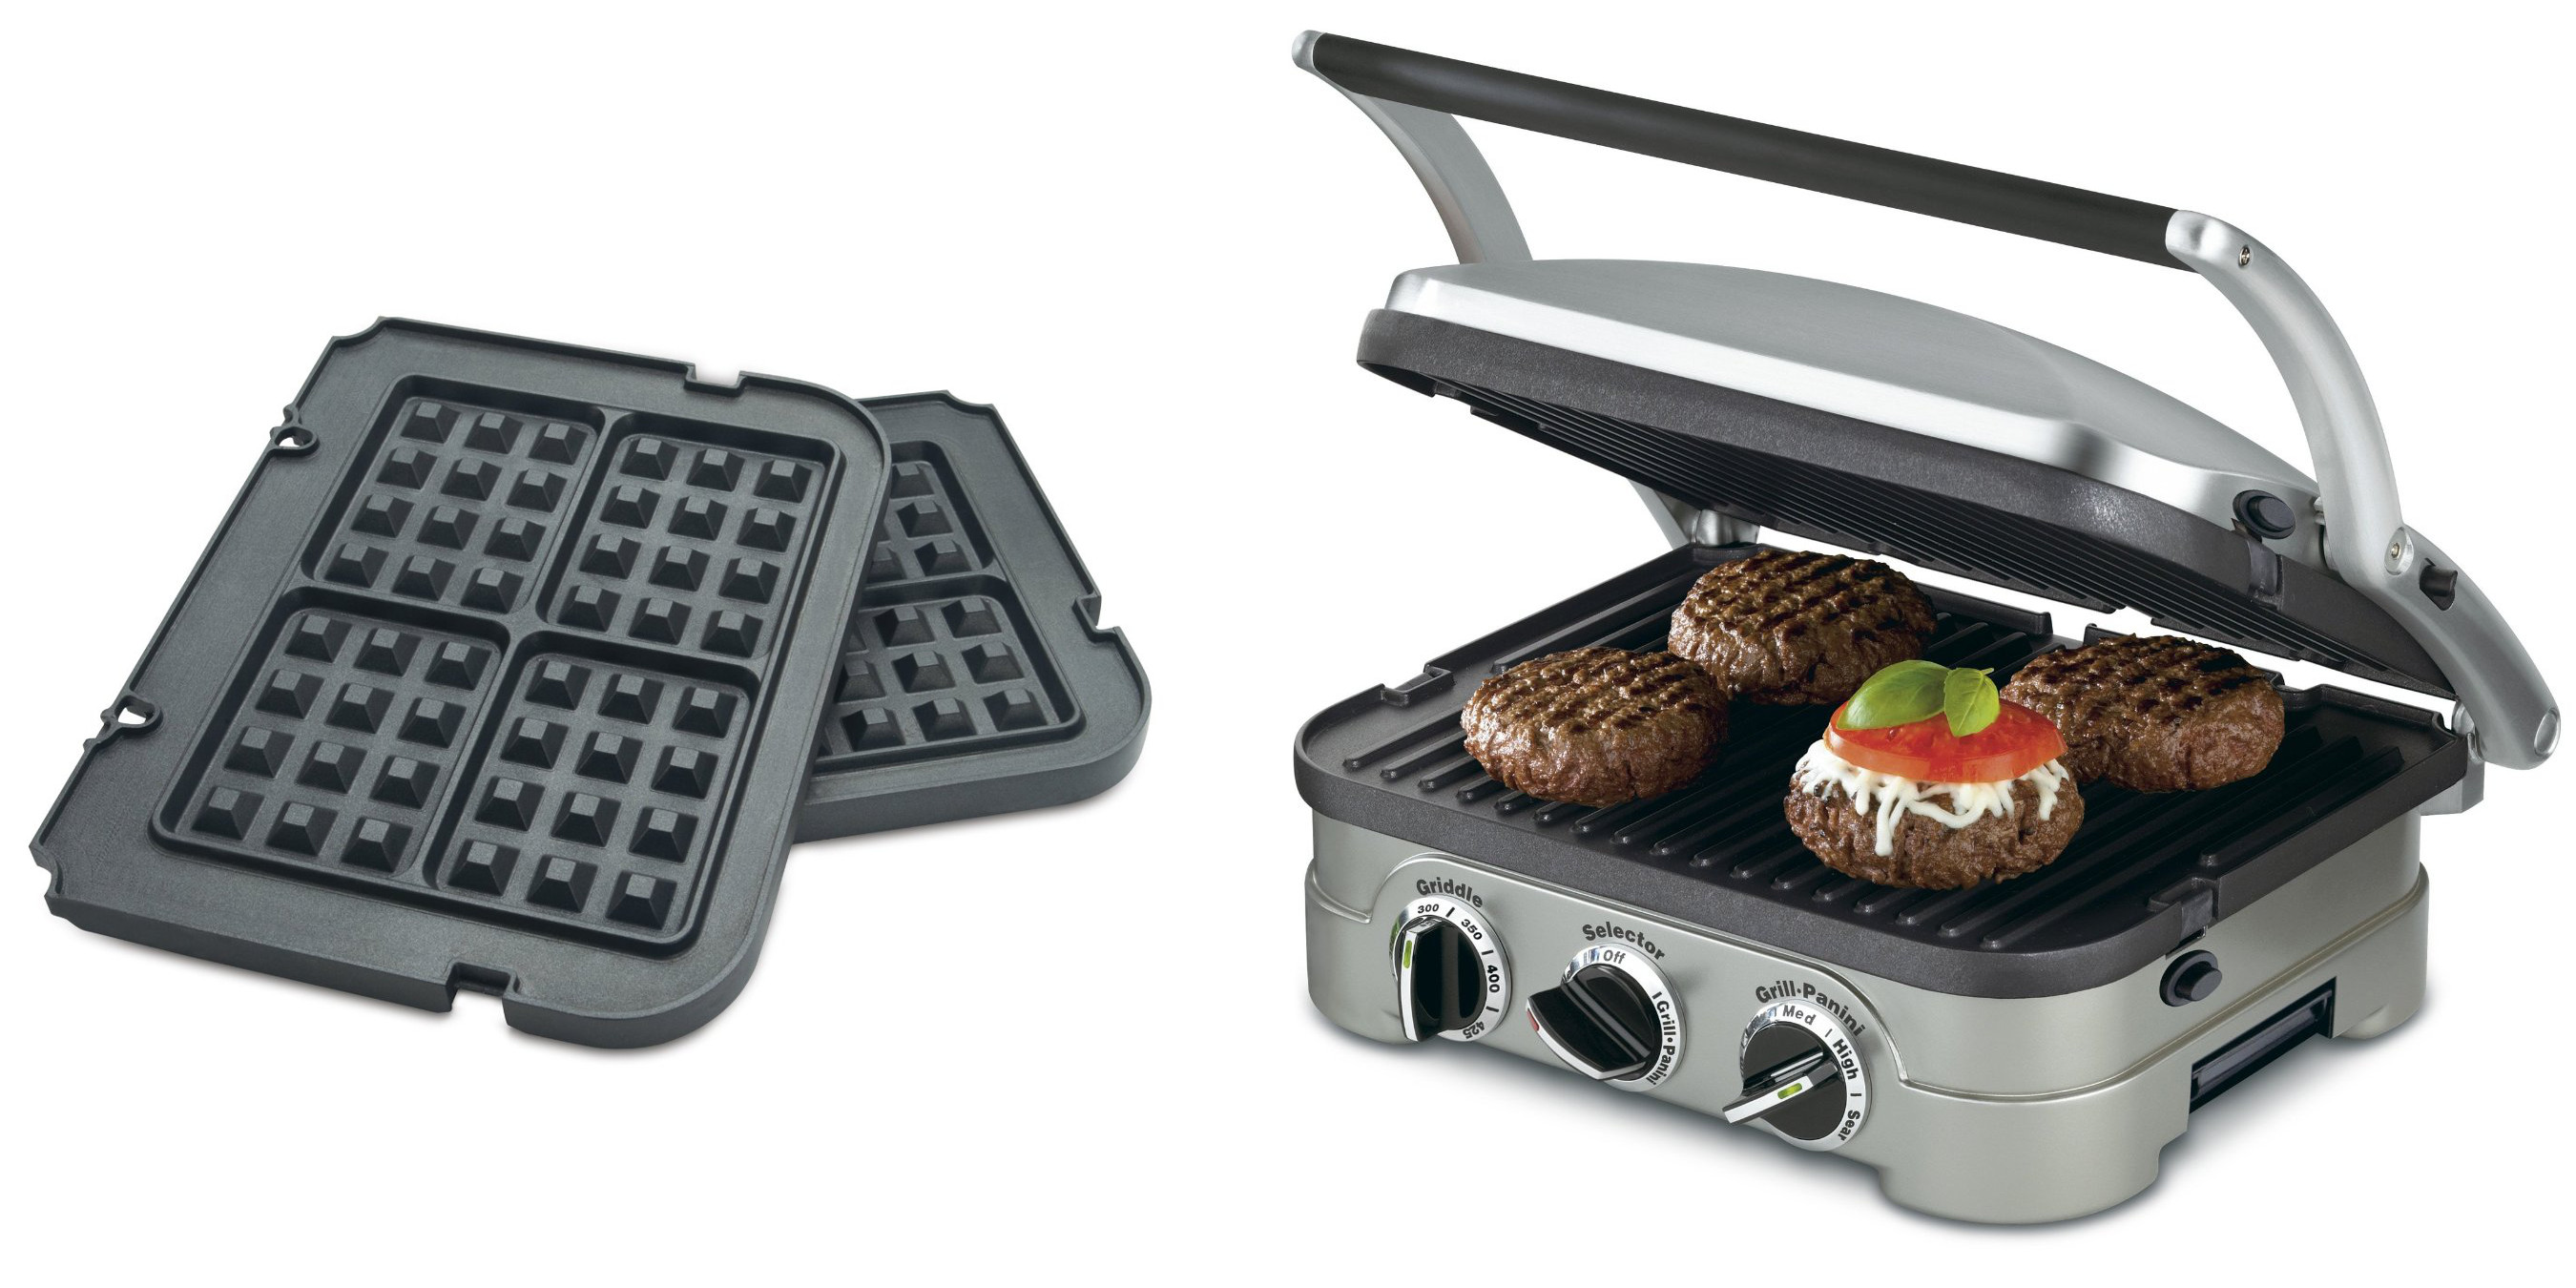 Grille Panini Amazon Is Offering The Cuisinart 5 In 1 Grill Press Waffle